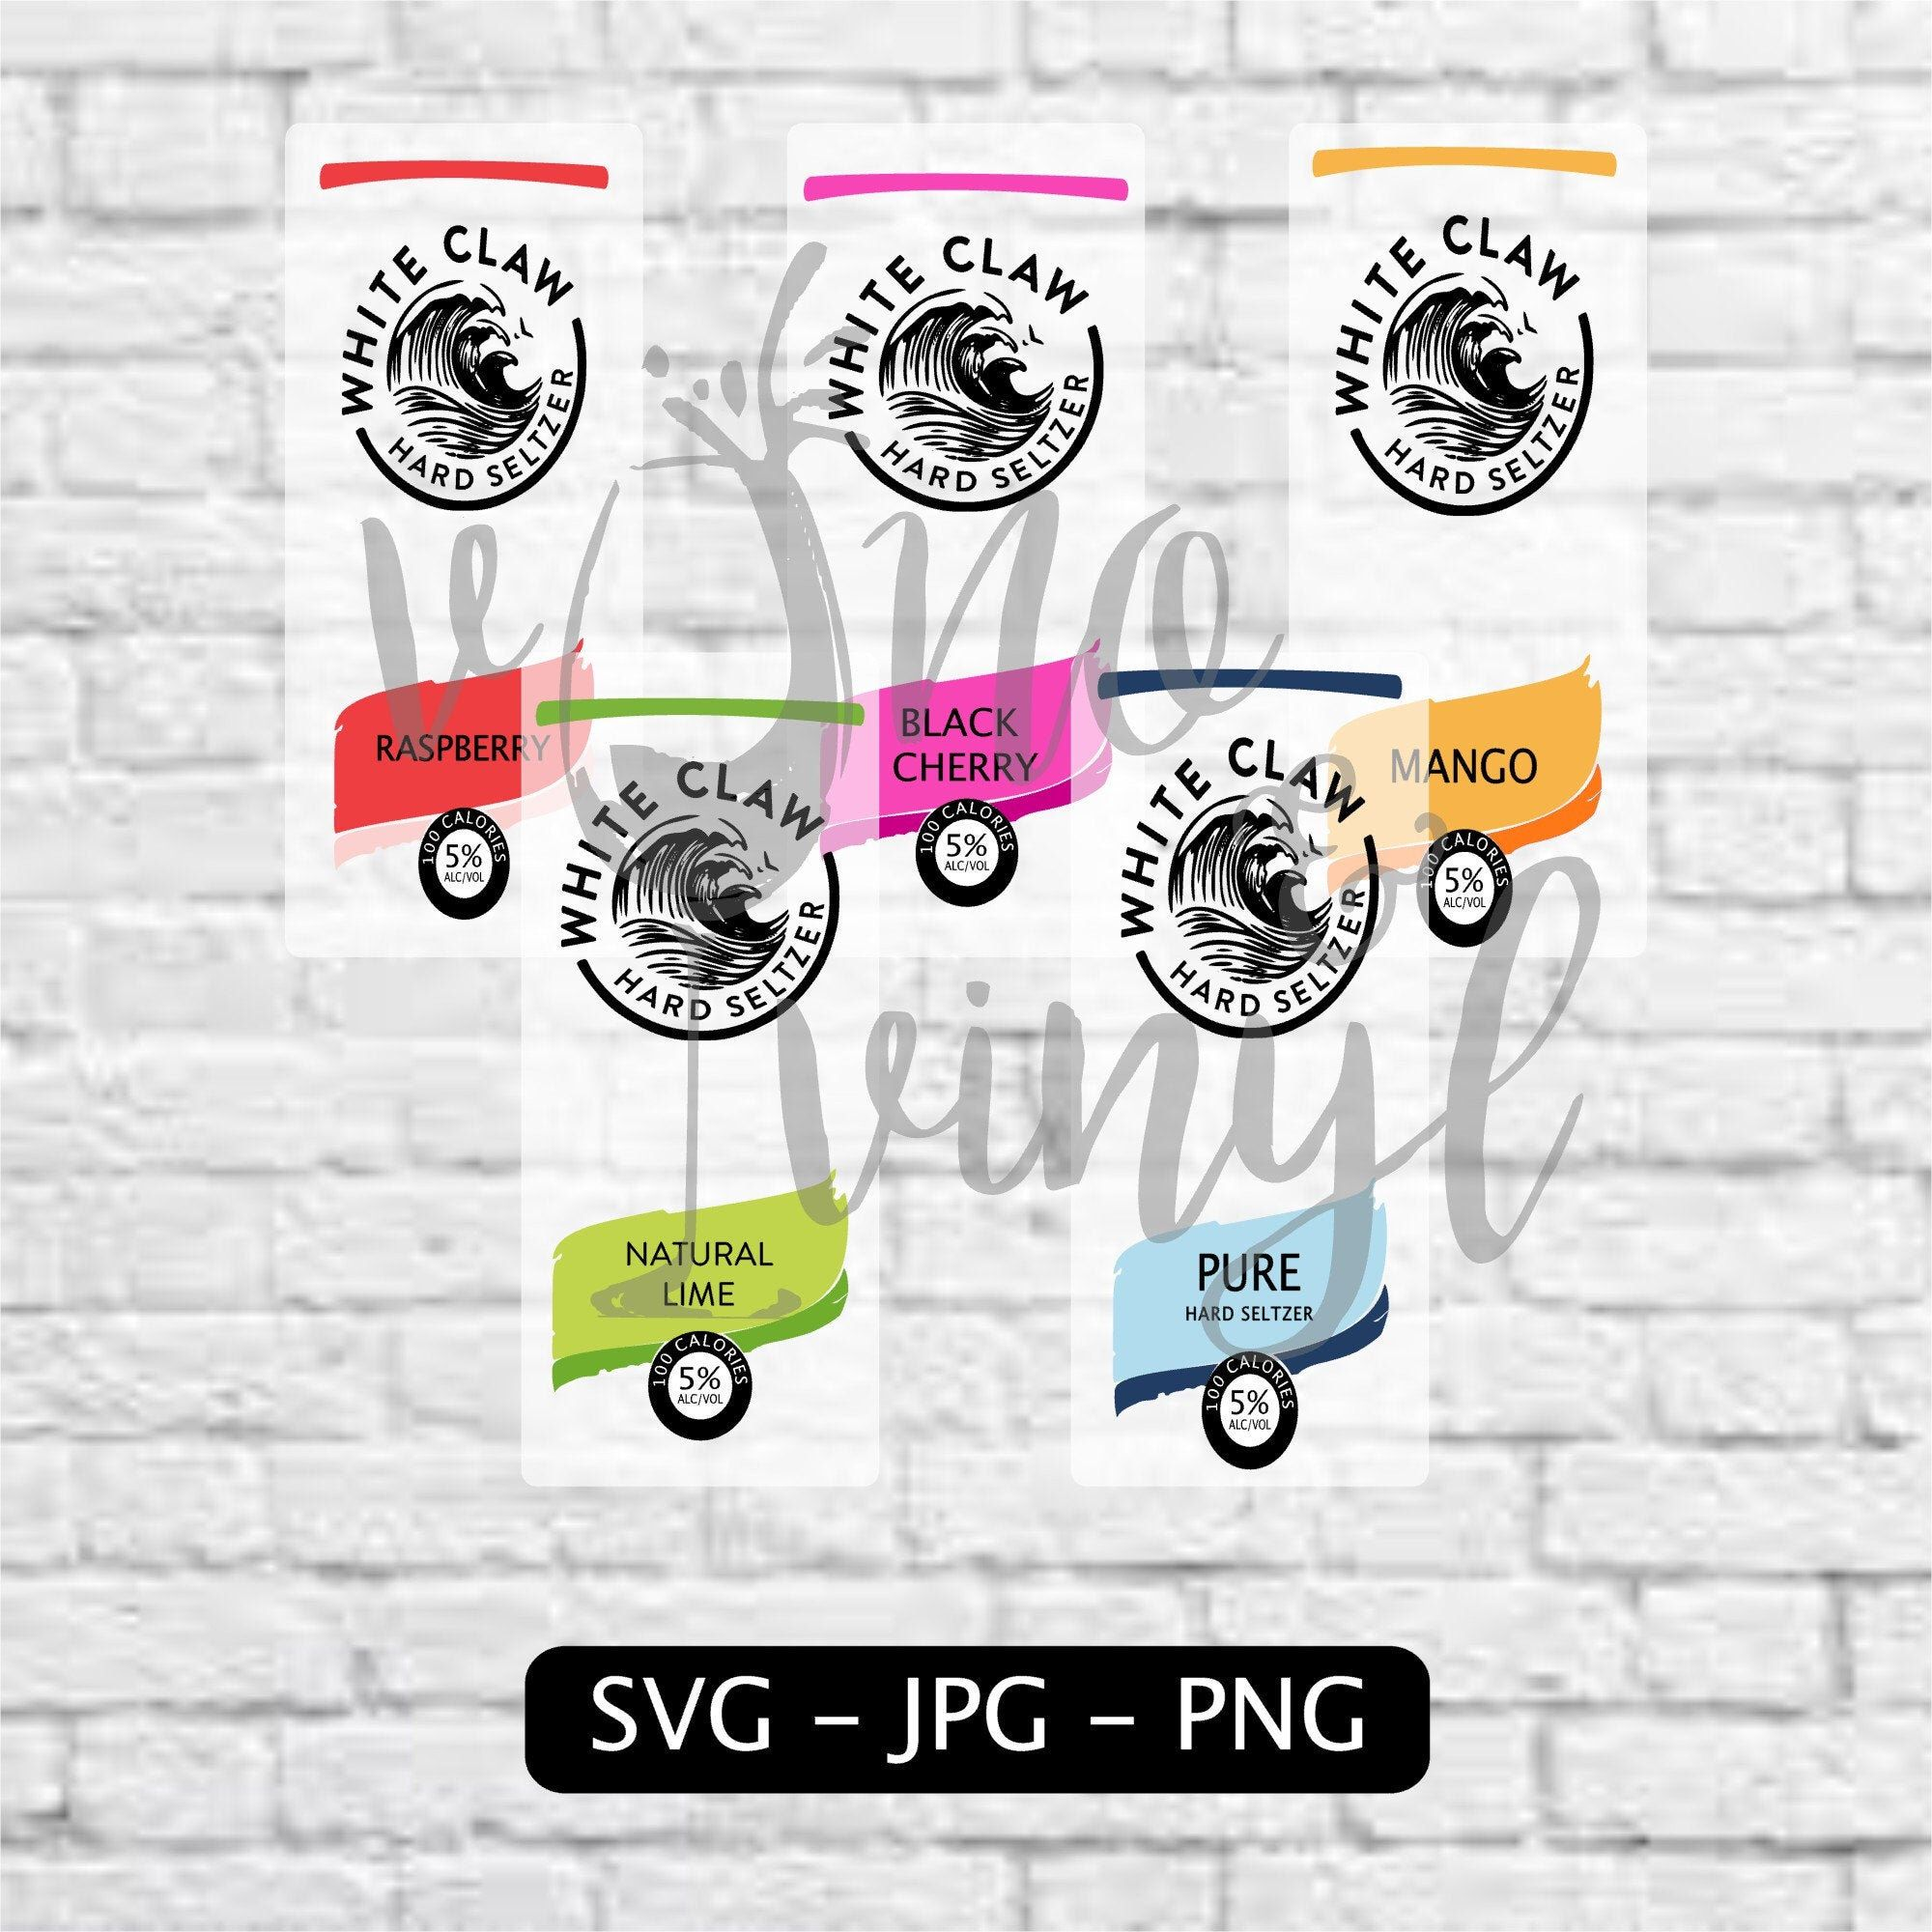 White Claw SVG/Image Combo Pack Pure Mango Black Cherry